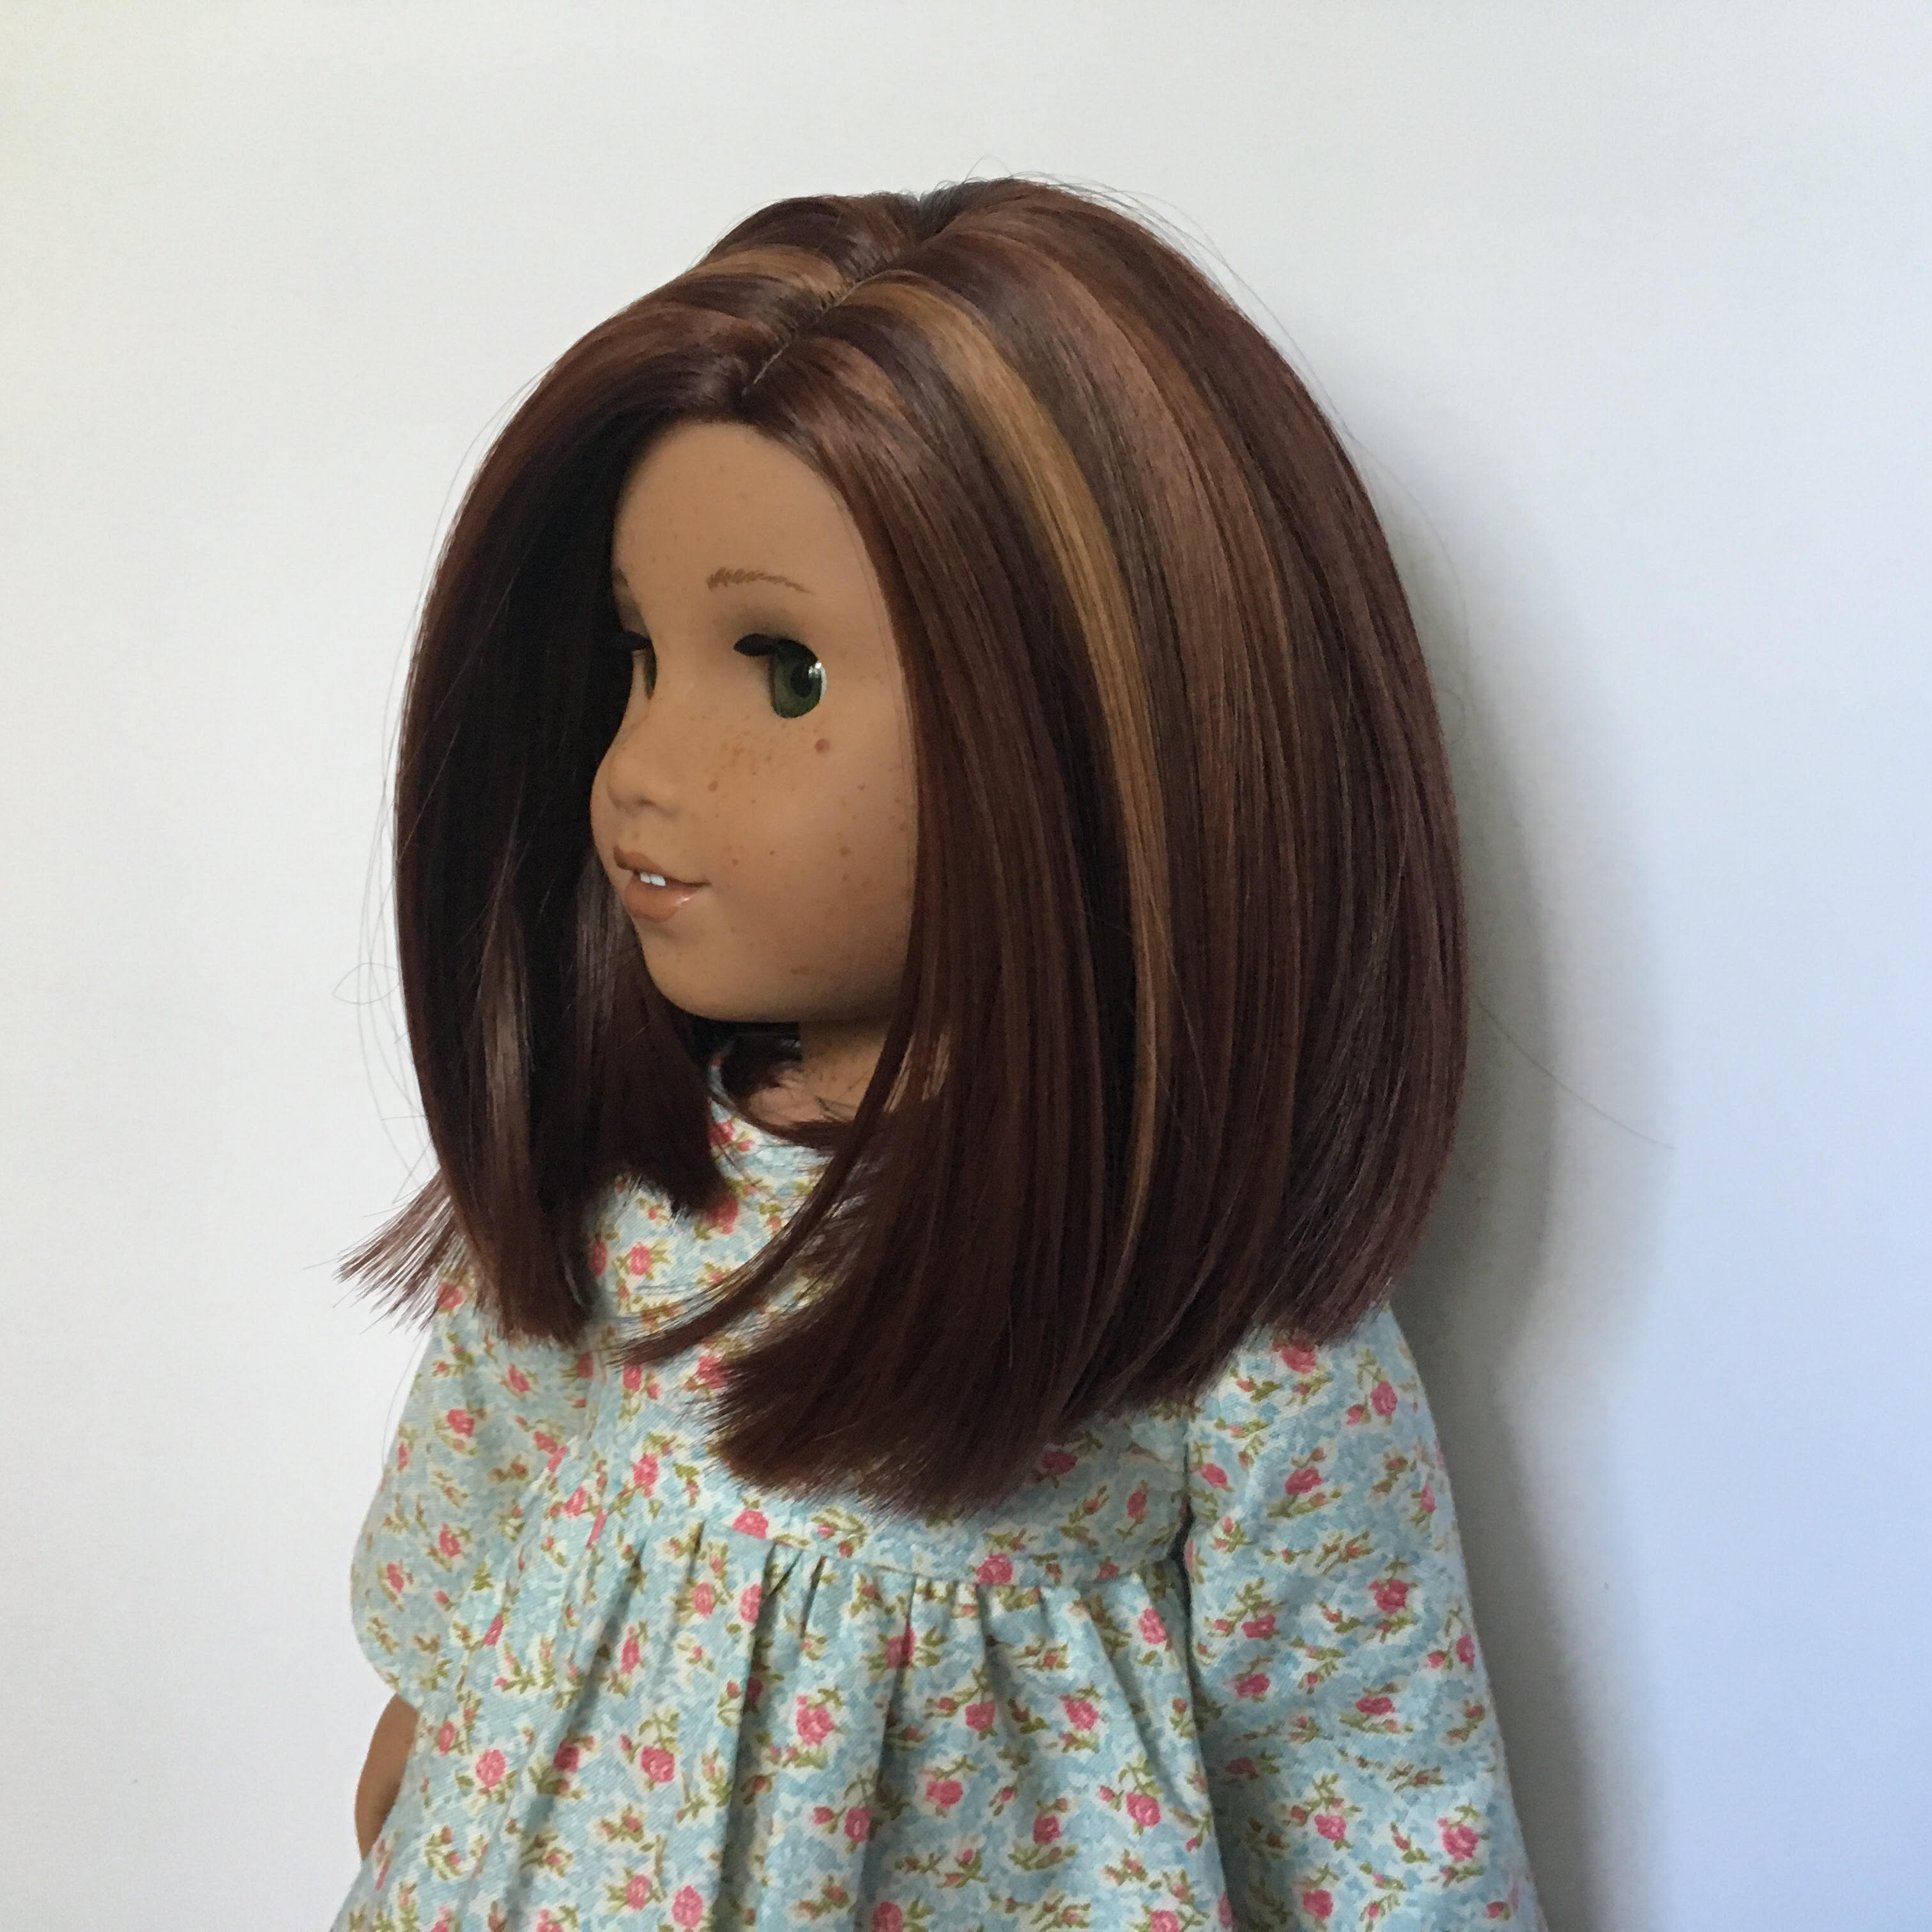 Zazou Dolls Exclusive Lily WIG Chocolate Copper for 18 Inch dolls such as Journey and American Girl